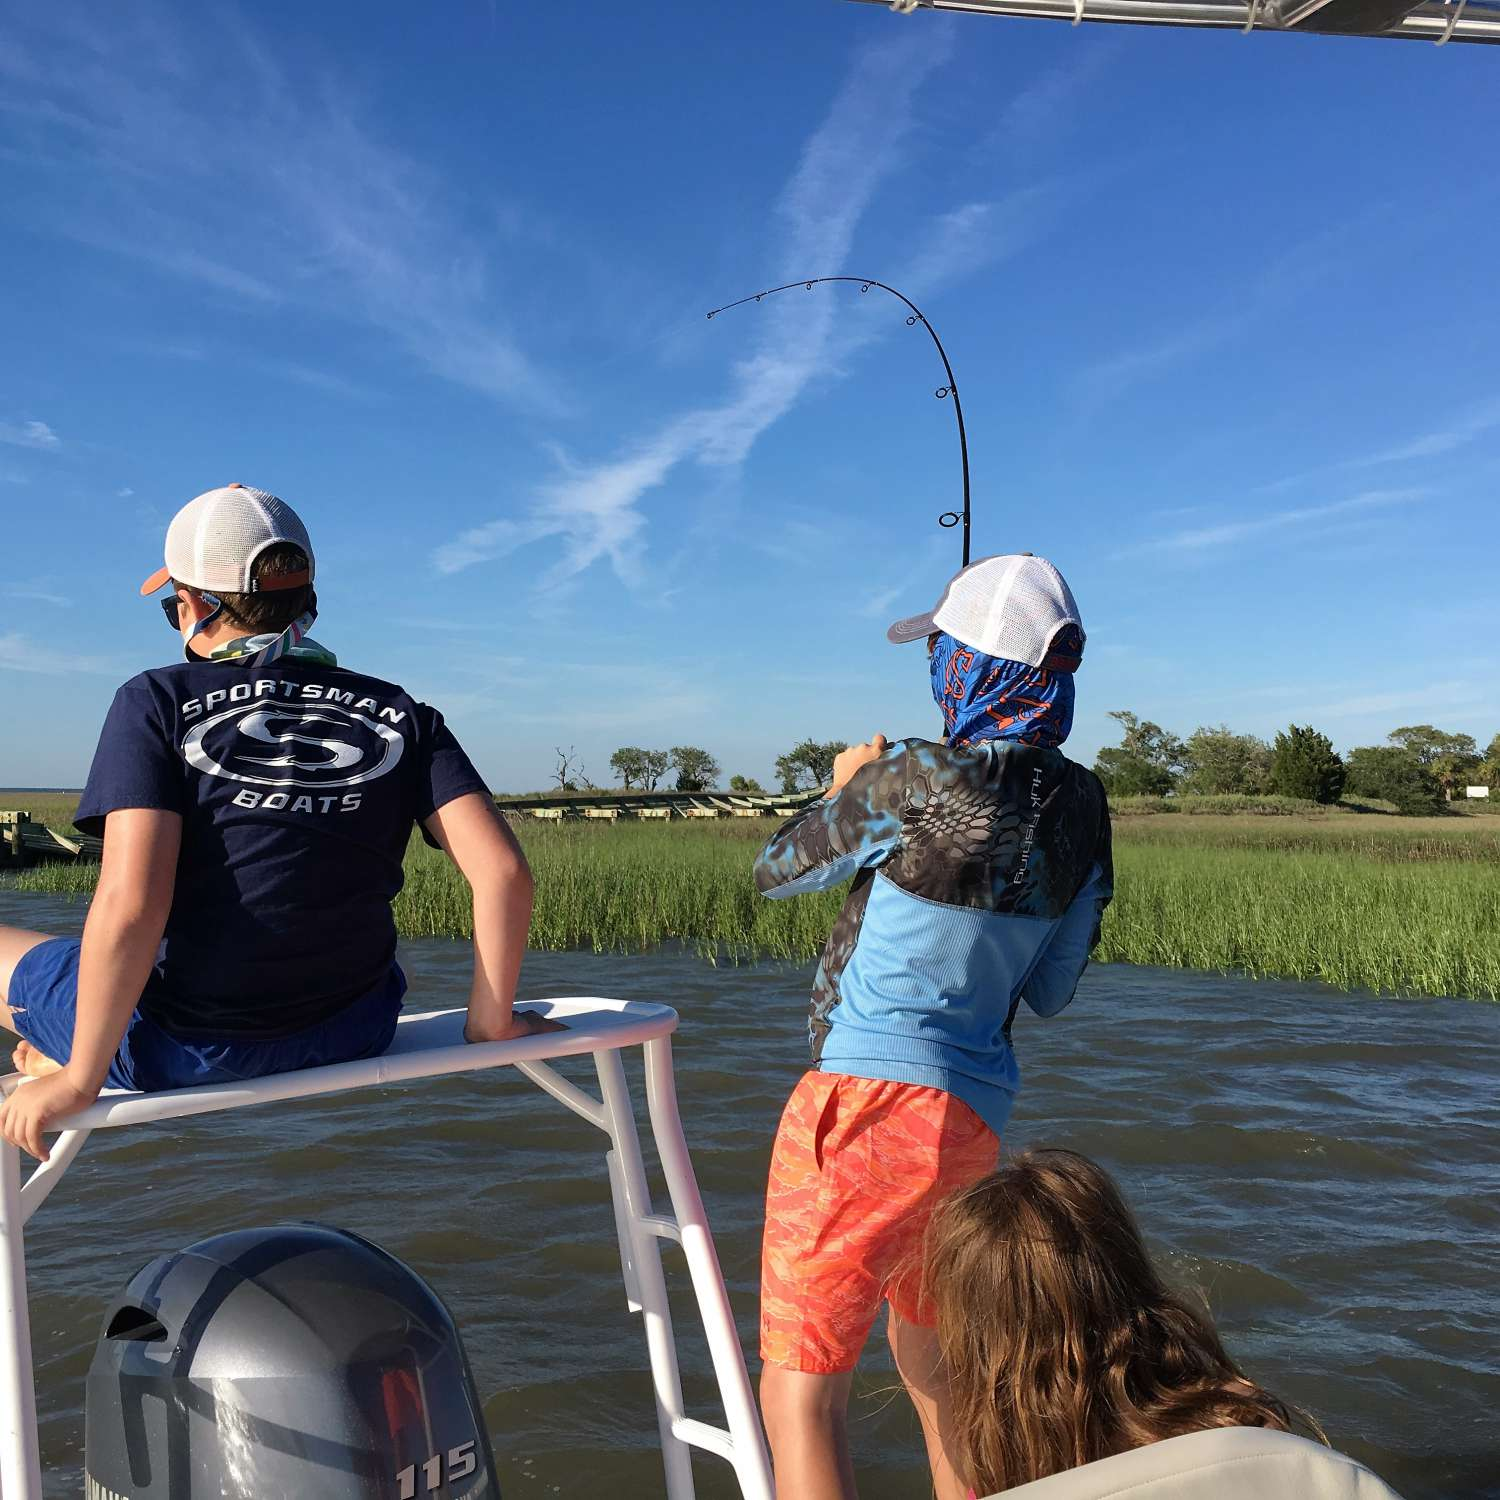 Title: First Fish On Our New Sportsman ! - On board their Sportsman Island Bay 20 Bay Boat - Location: Saluda, South Carolina. Participating in the Photo Contest #SportsmanJuly2017